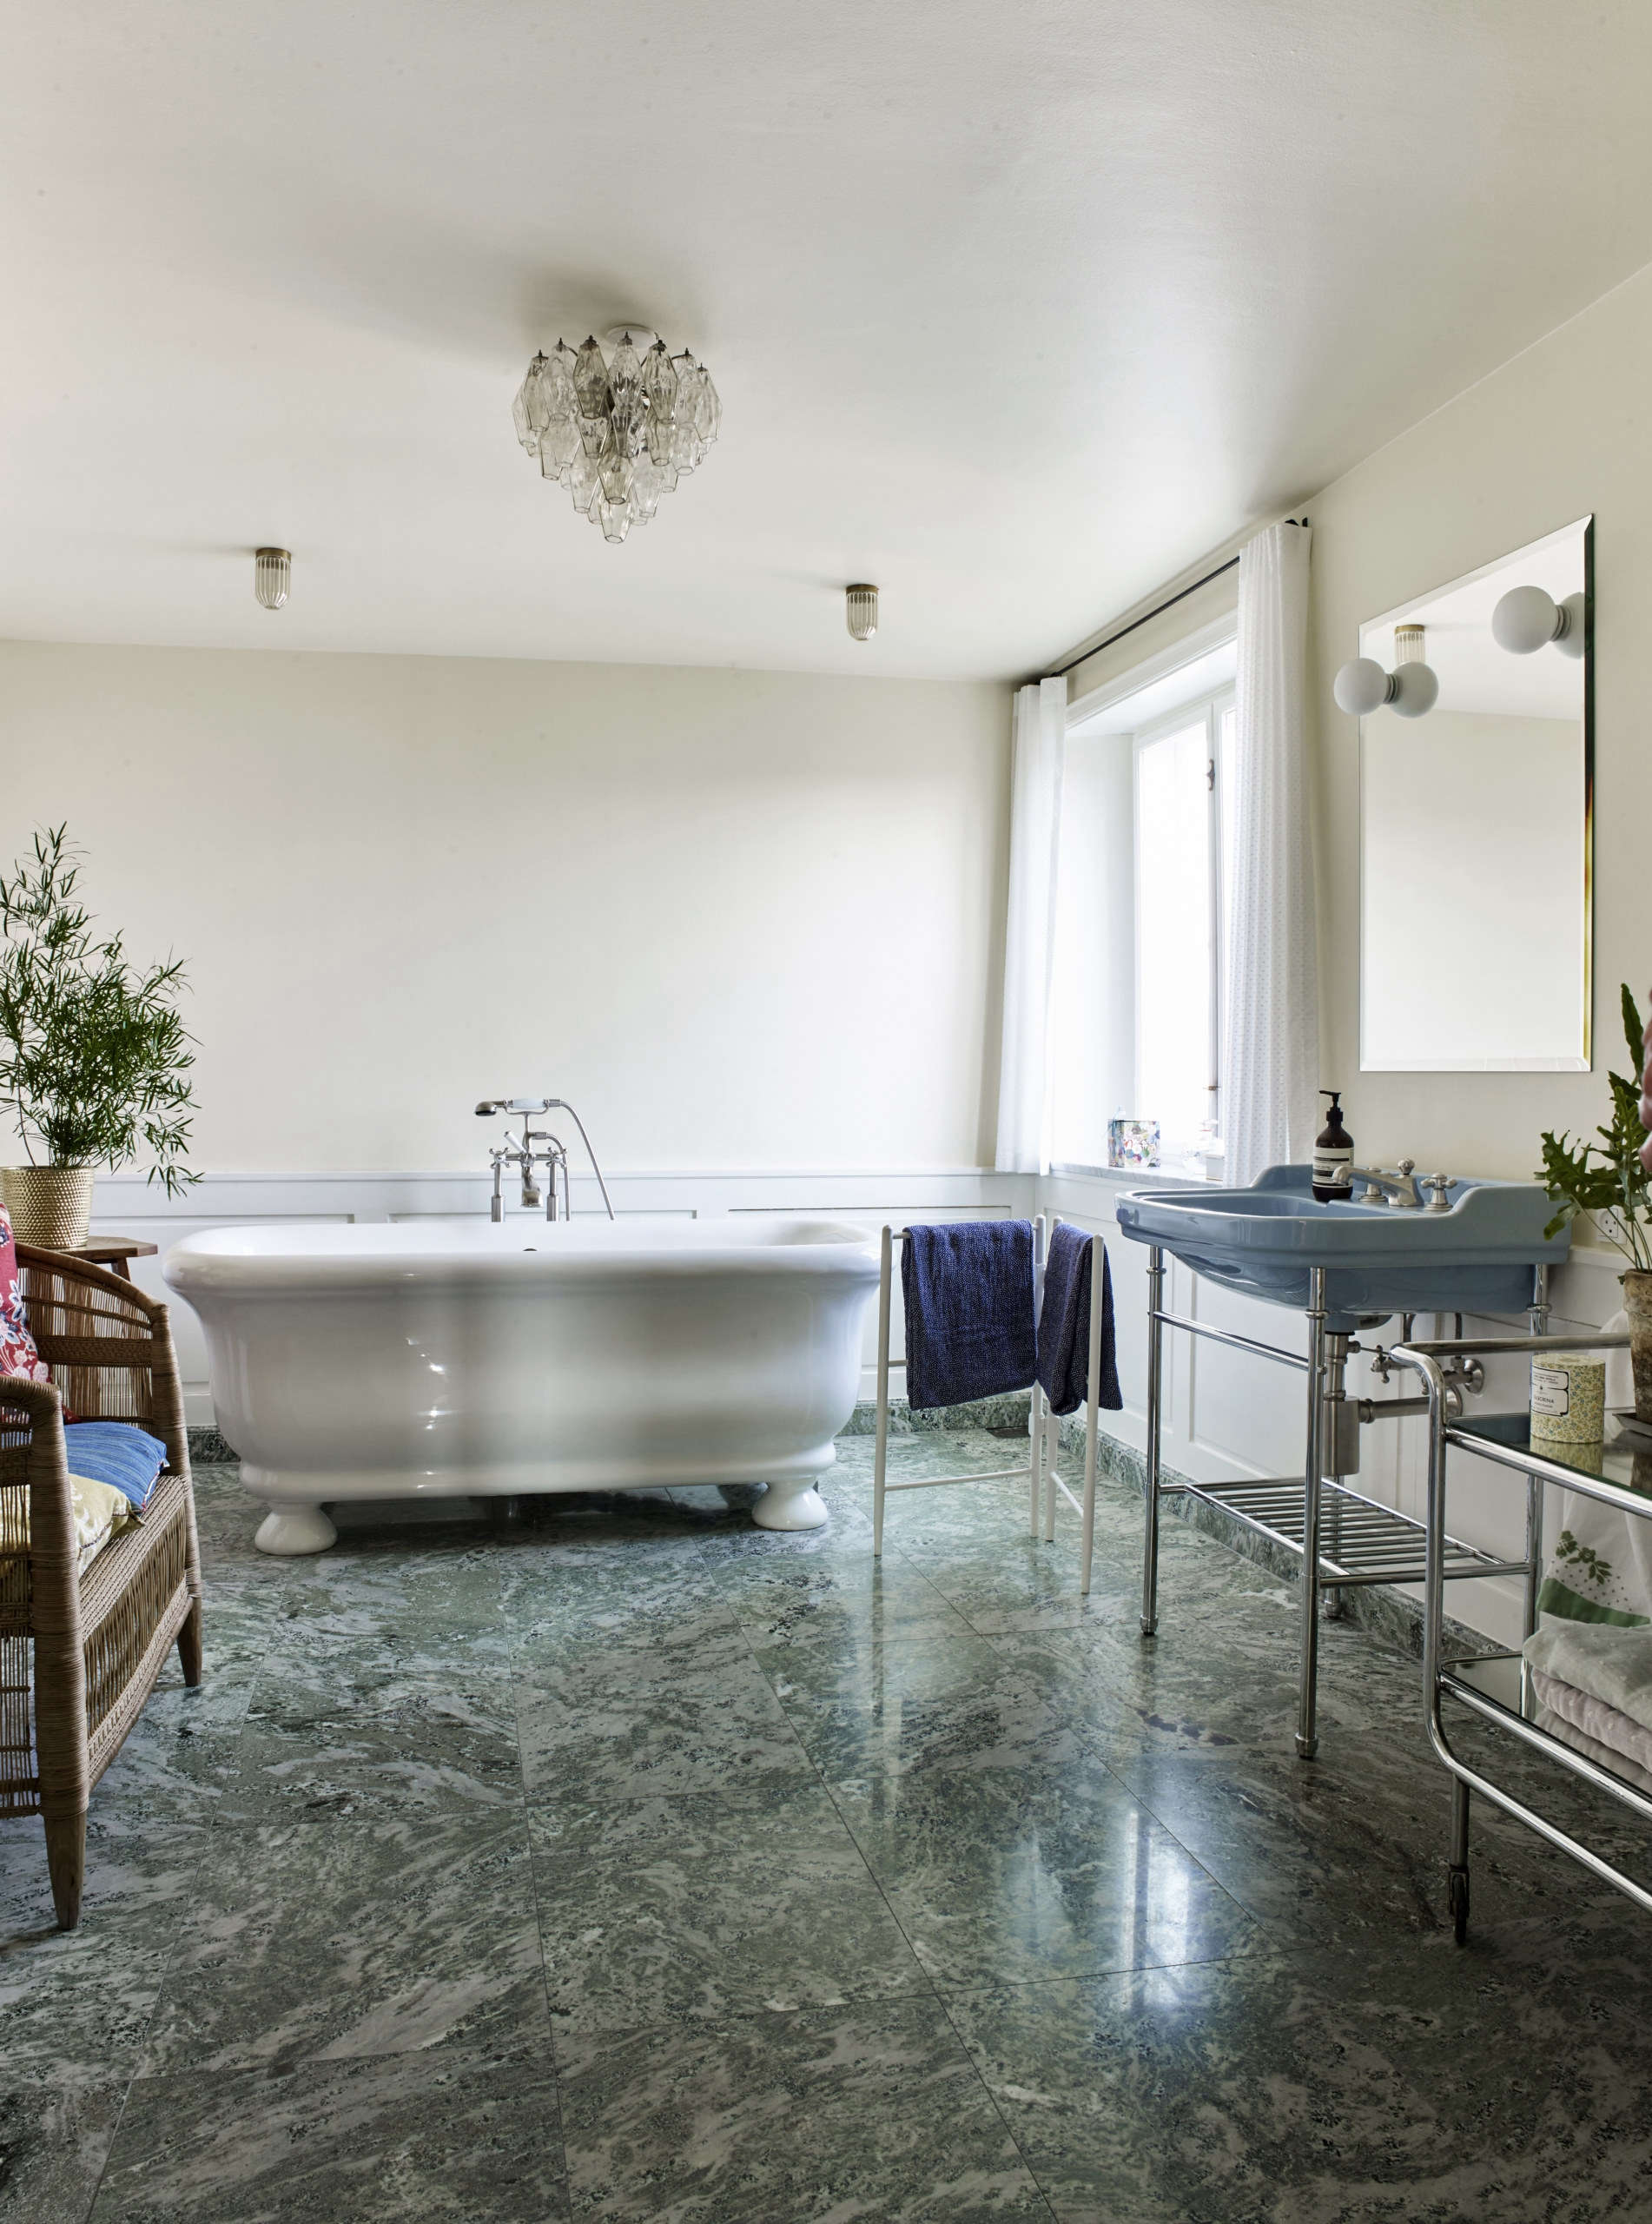 The bathroom has a Swedish green marble floor and a freestanding tub. A 50s French Bar Cart serves as storage shelves.